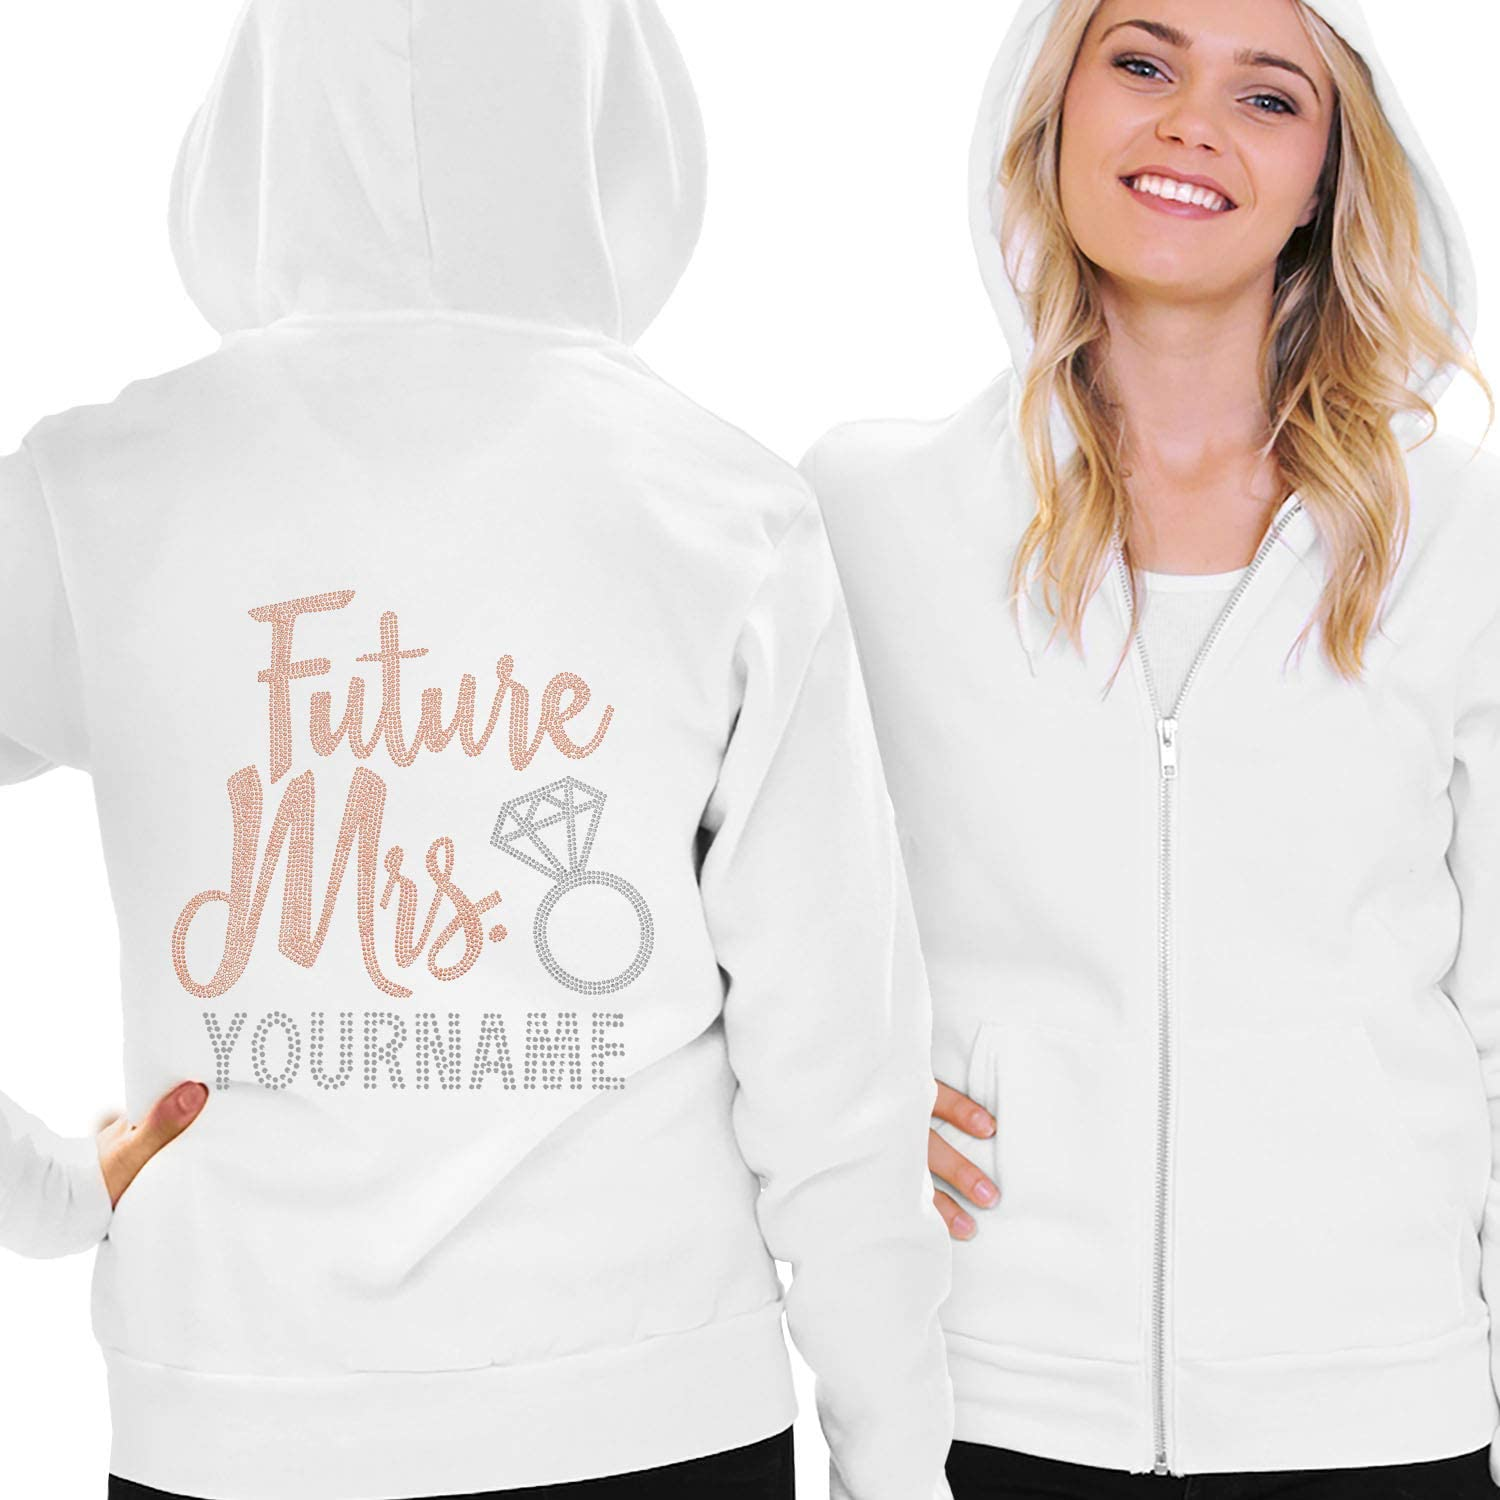 Personalized Future Mrs Hooded Sweatshirt for Bride to Be